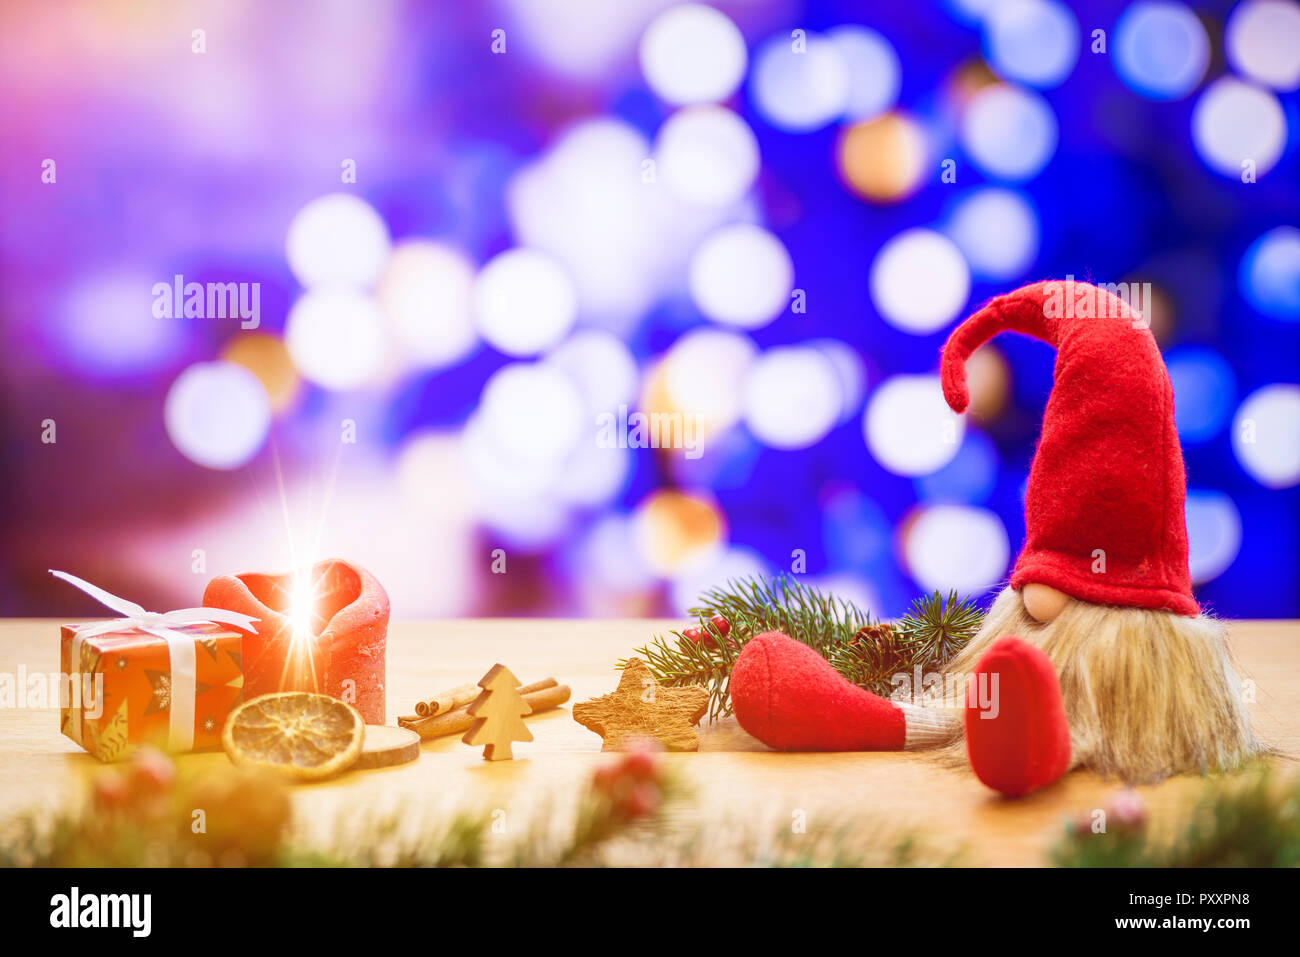 Red sitting christmas elf with bokeh lights in background surrounded by christmas decorations as gift box and ignited advent candle - Stock Image